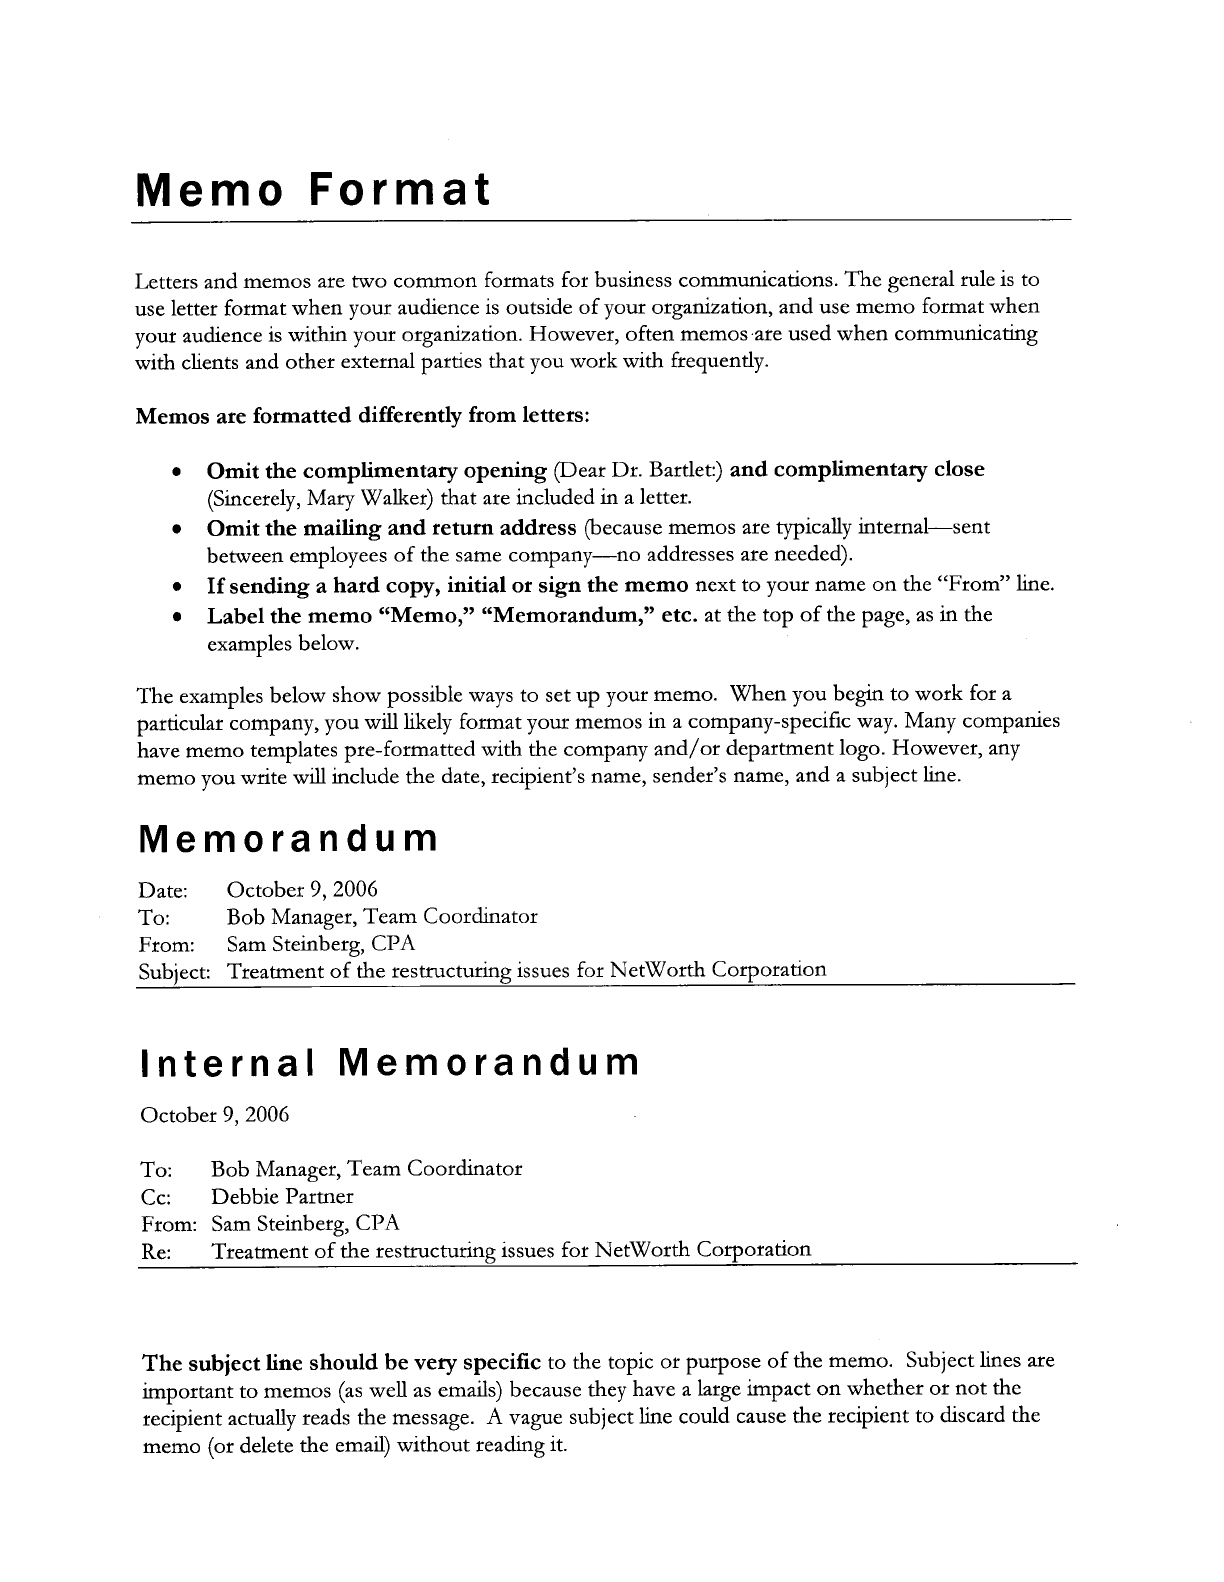 Business memo template solarfm business memo template altavistaventures